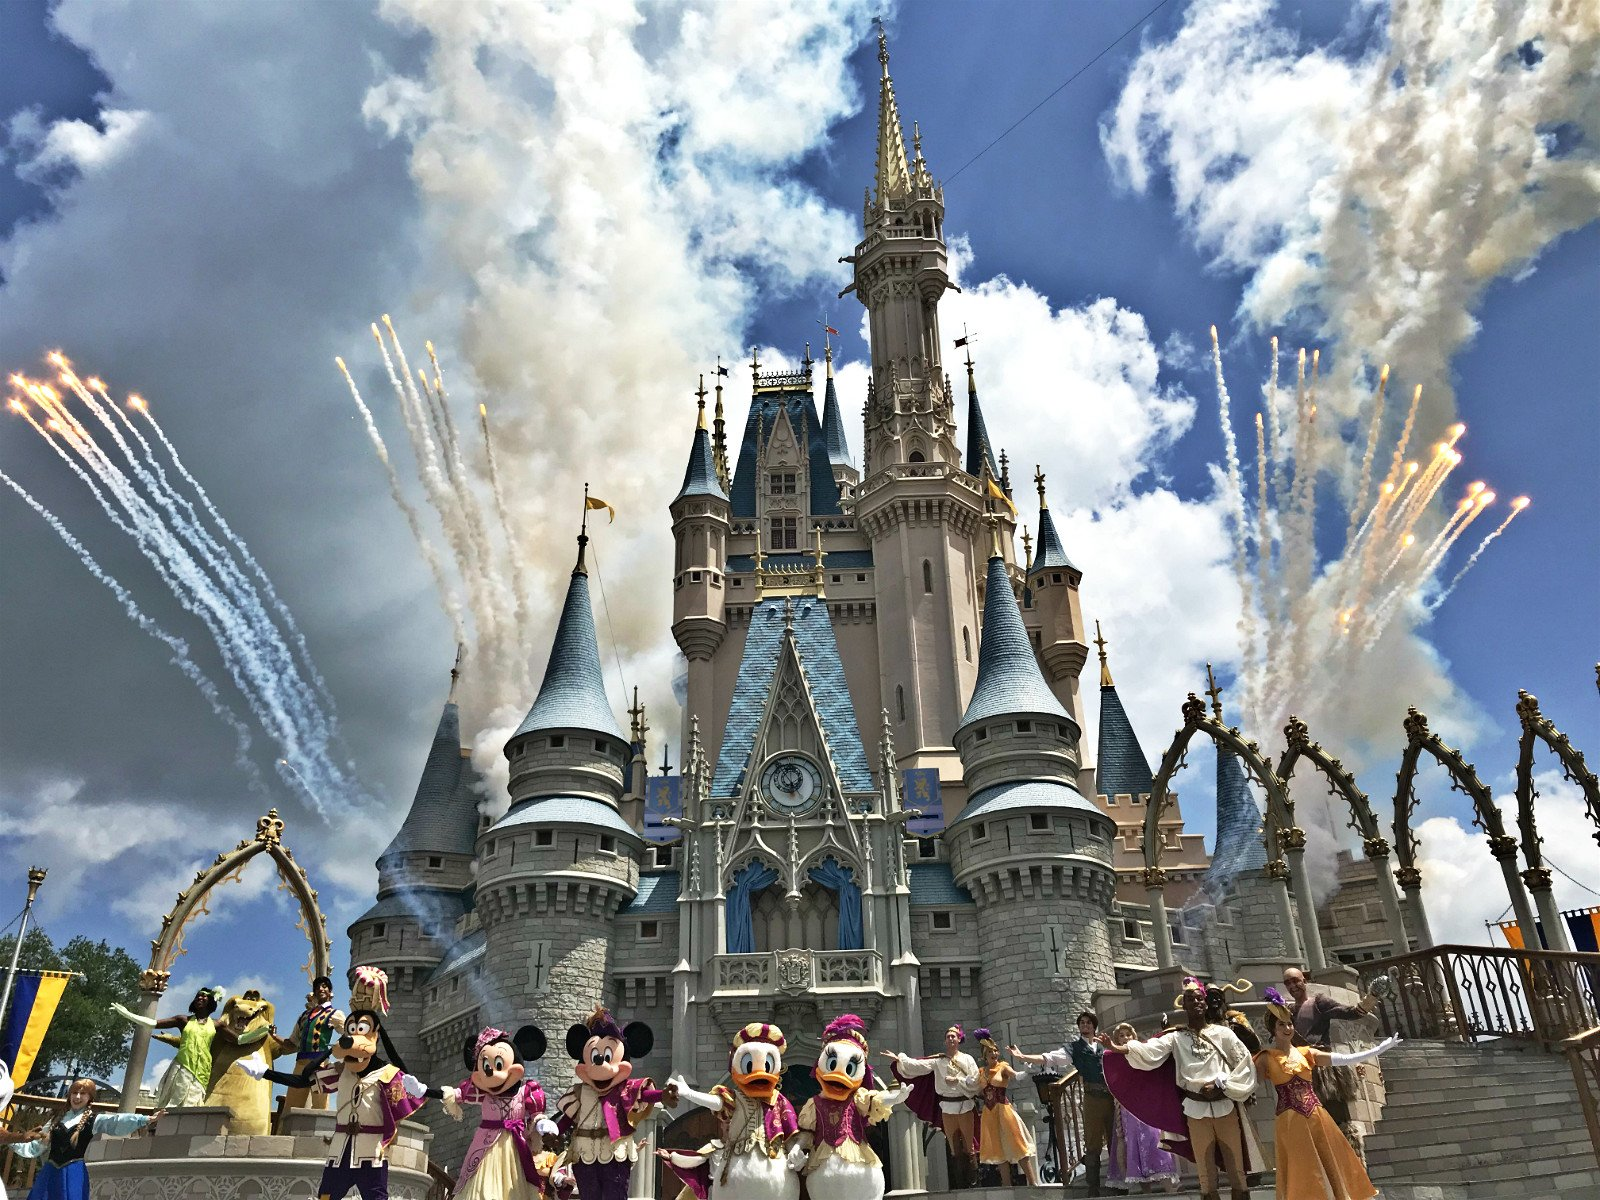 8-Day Orlando Disney, Virginia Caverns, Asheville, Atlanta City, Orlando, St. Augustine, New York Departure